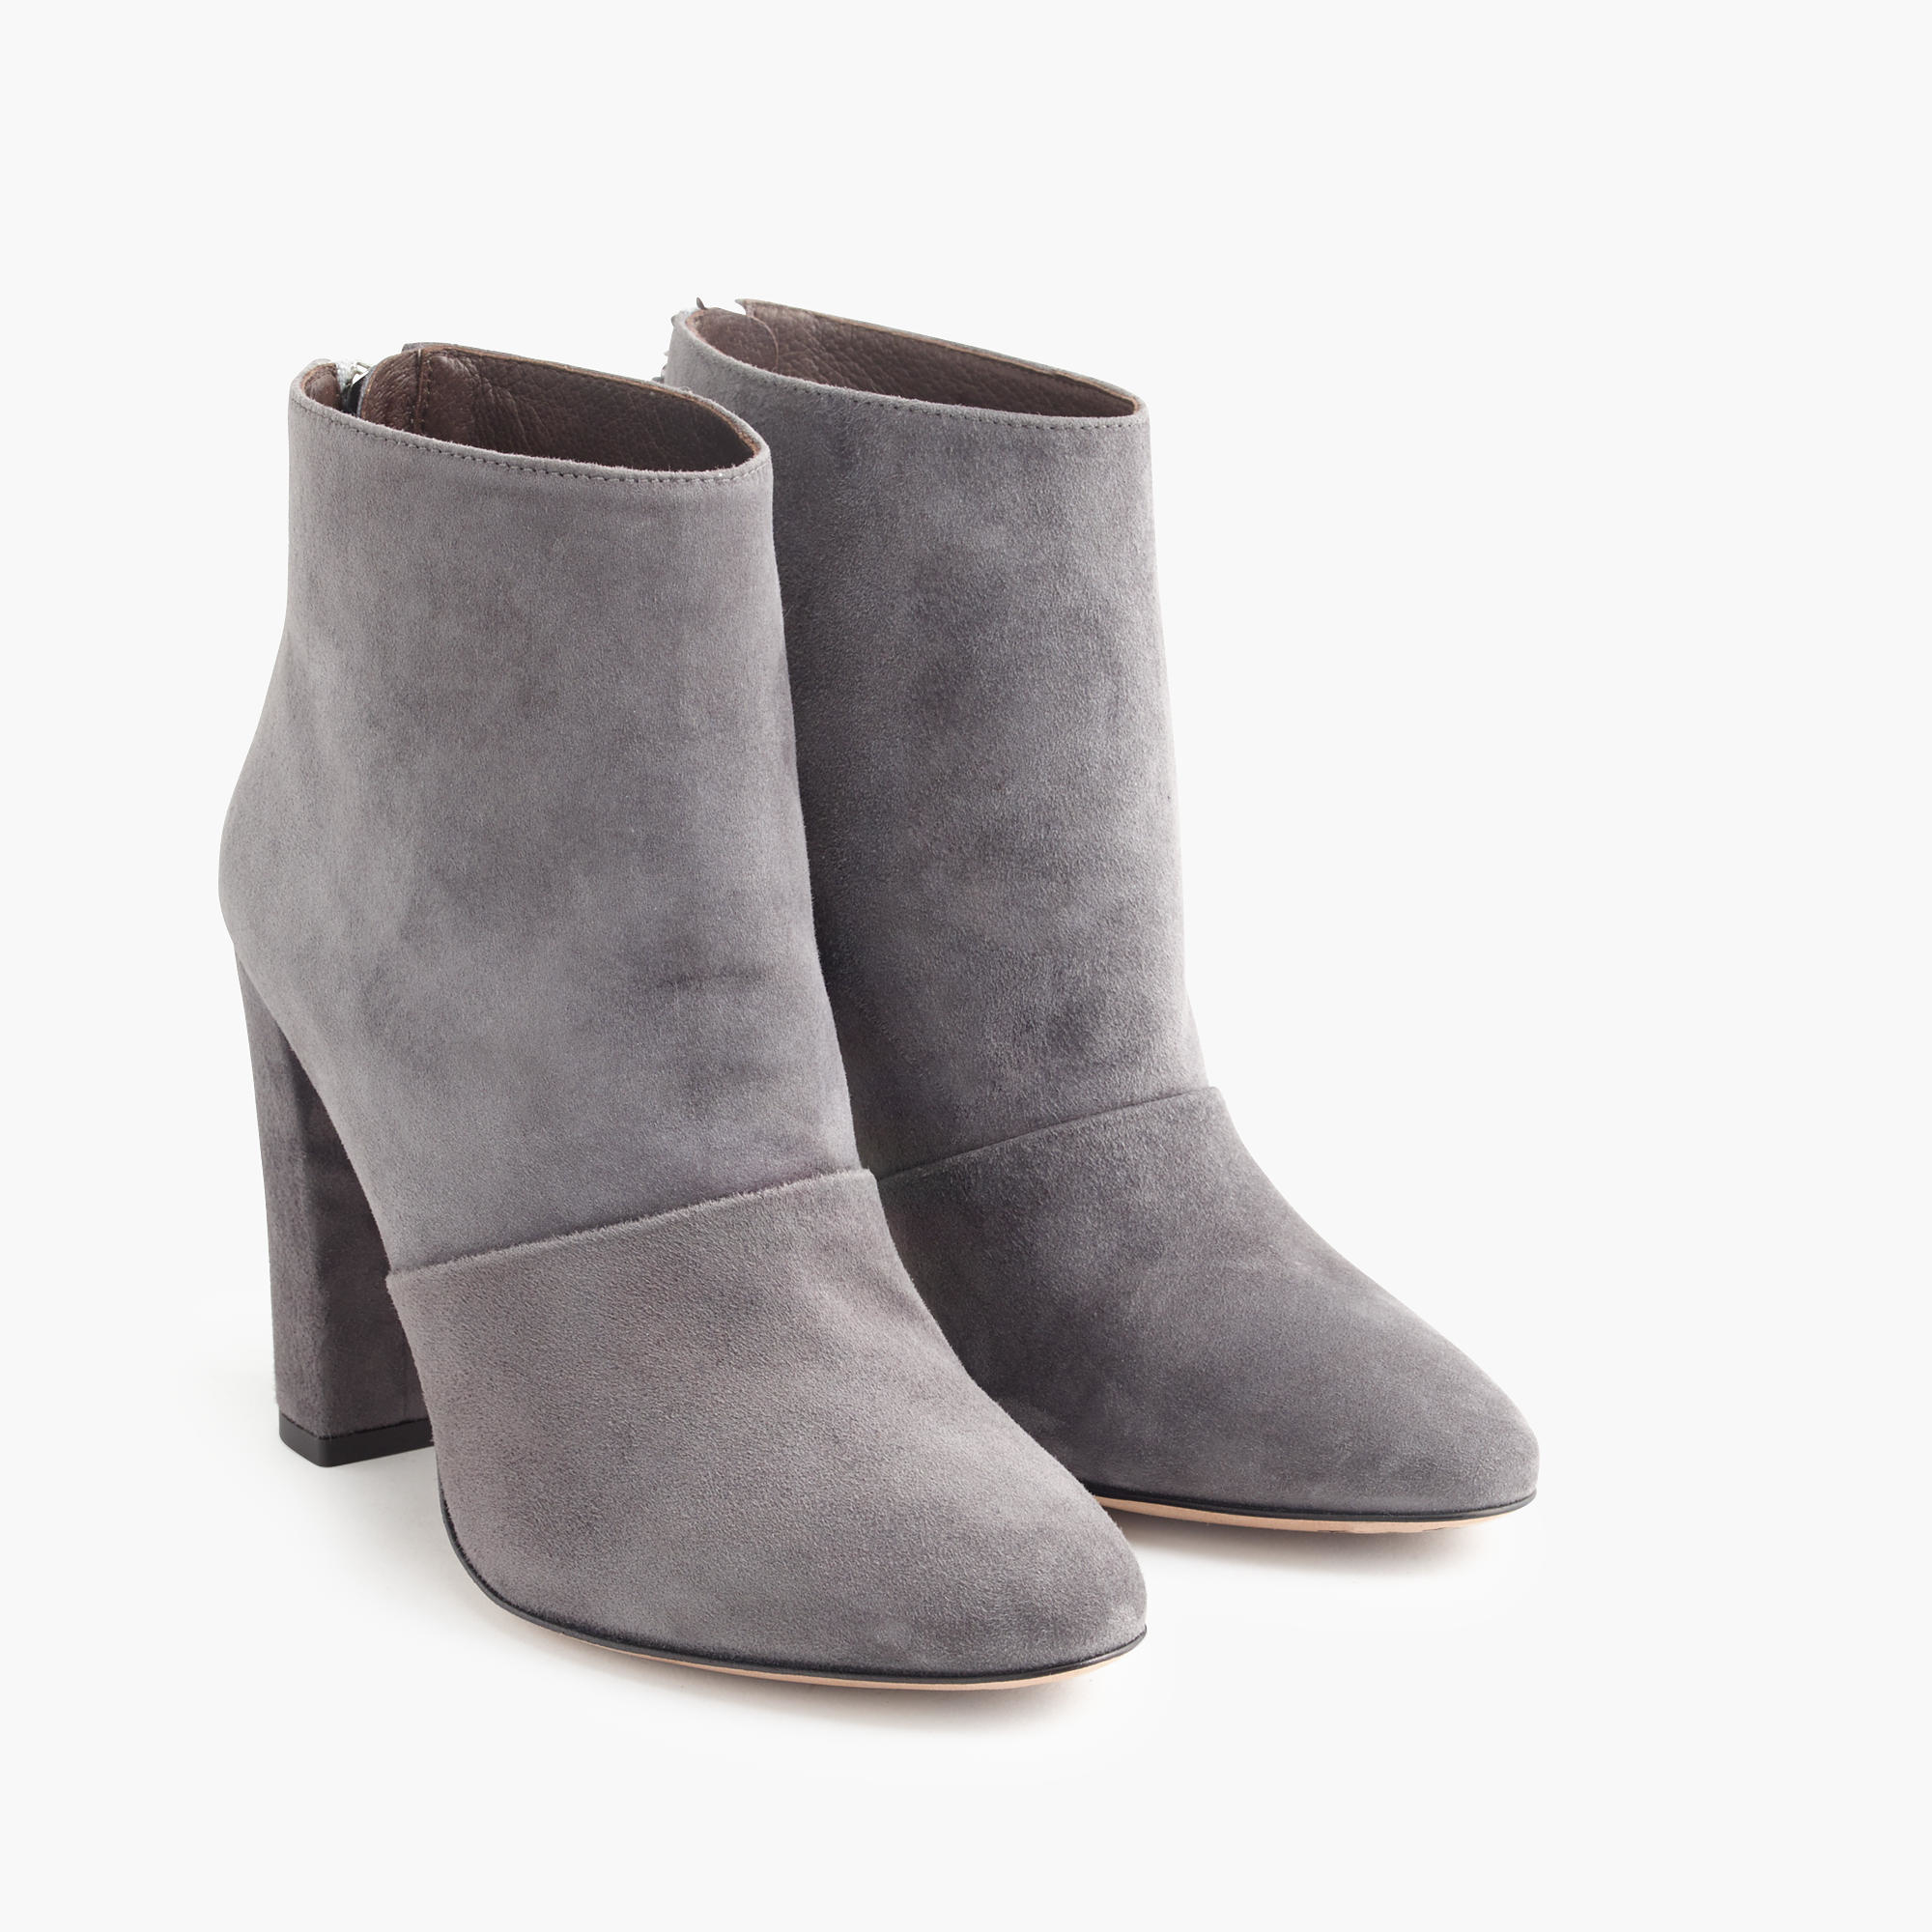 j crew adele suede ankle boots in gray heron grey lyst